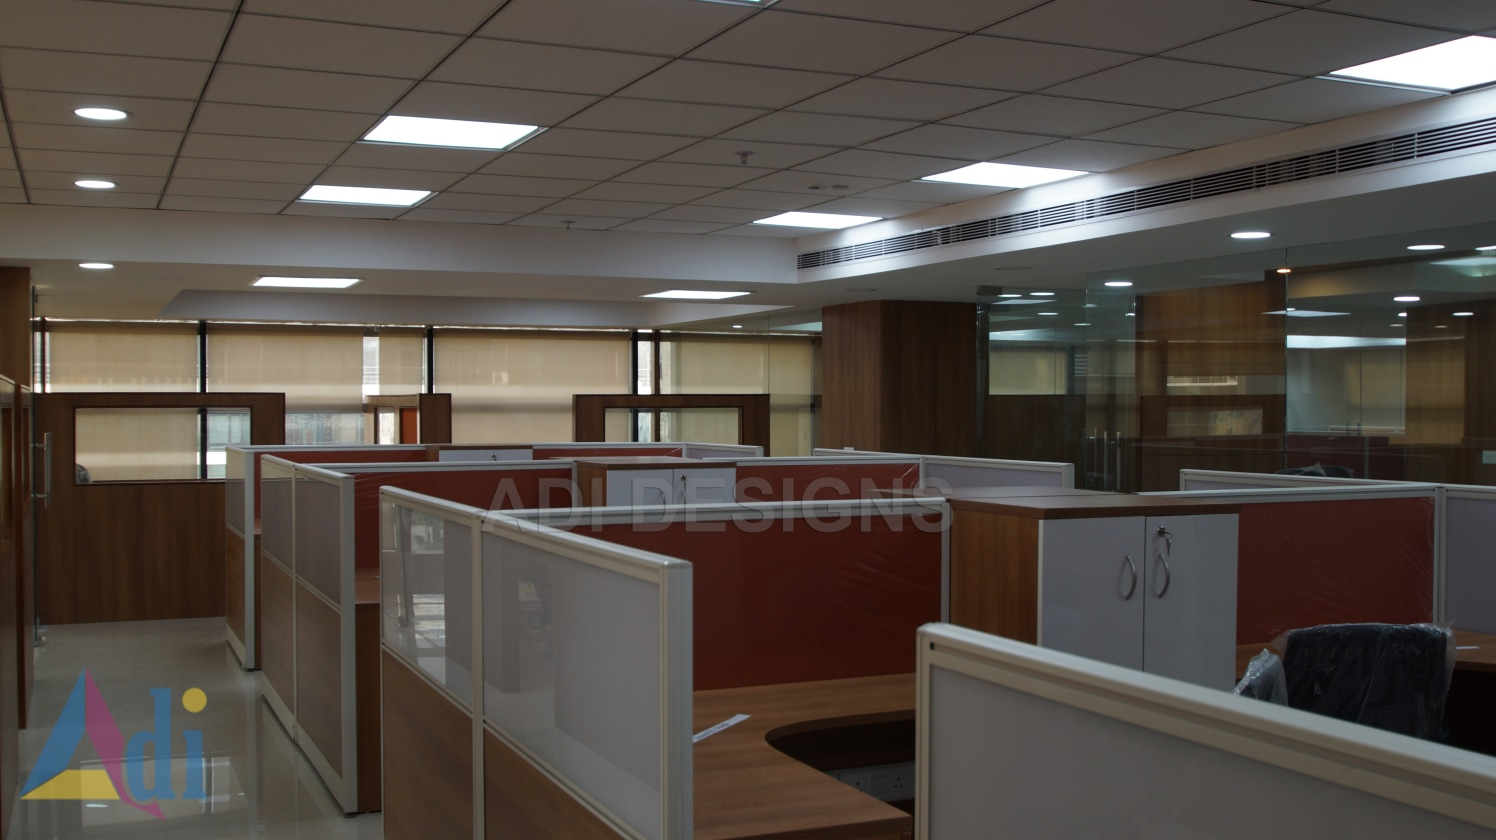 Cellular space office with wooden desk and false ceiling by Vishal Arora Modern | Interior Design Photos & Ideas